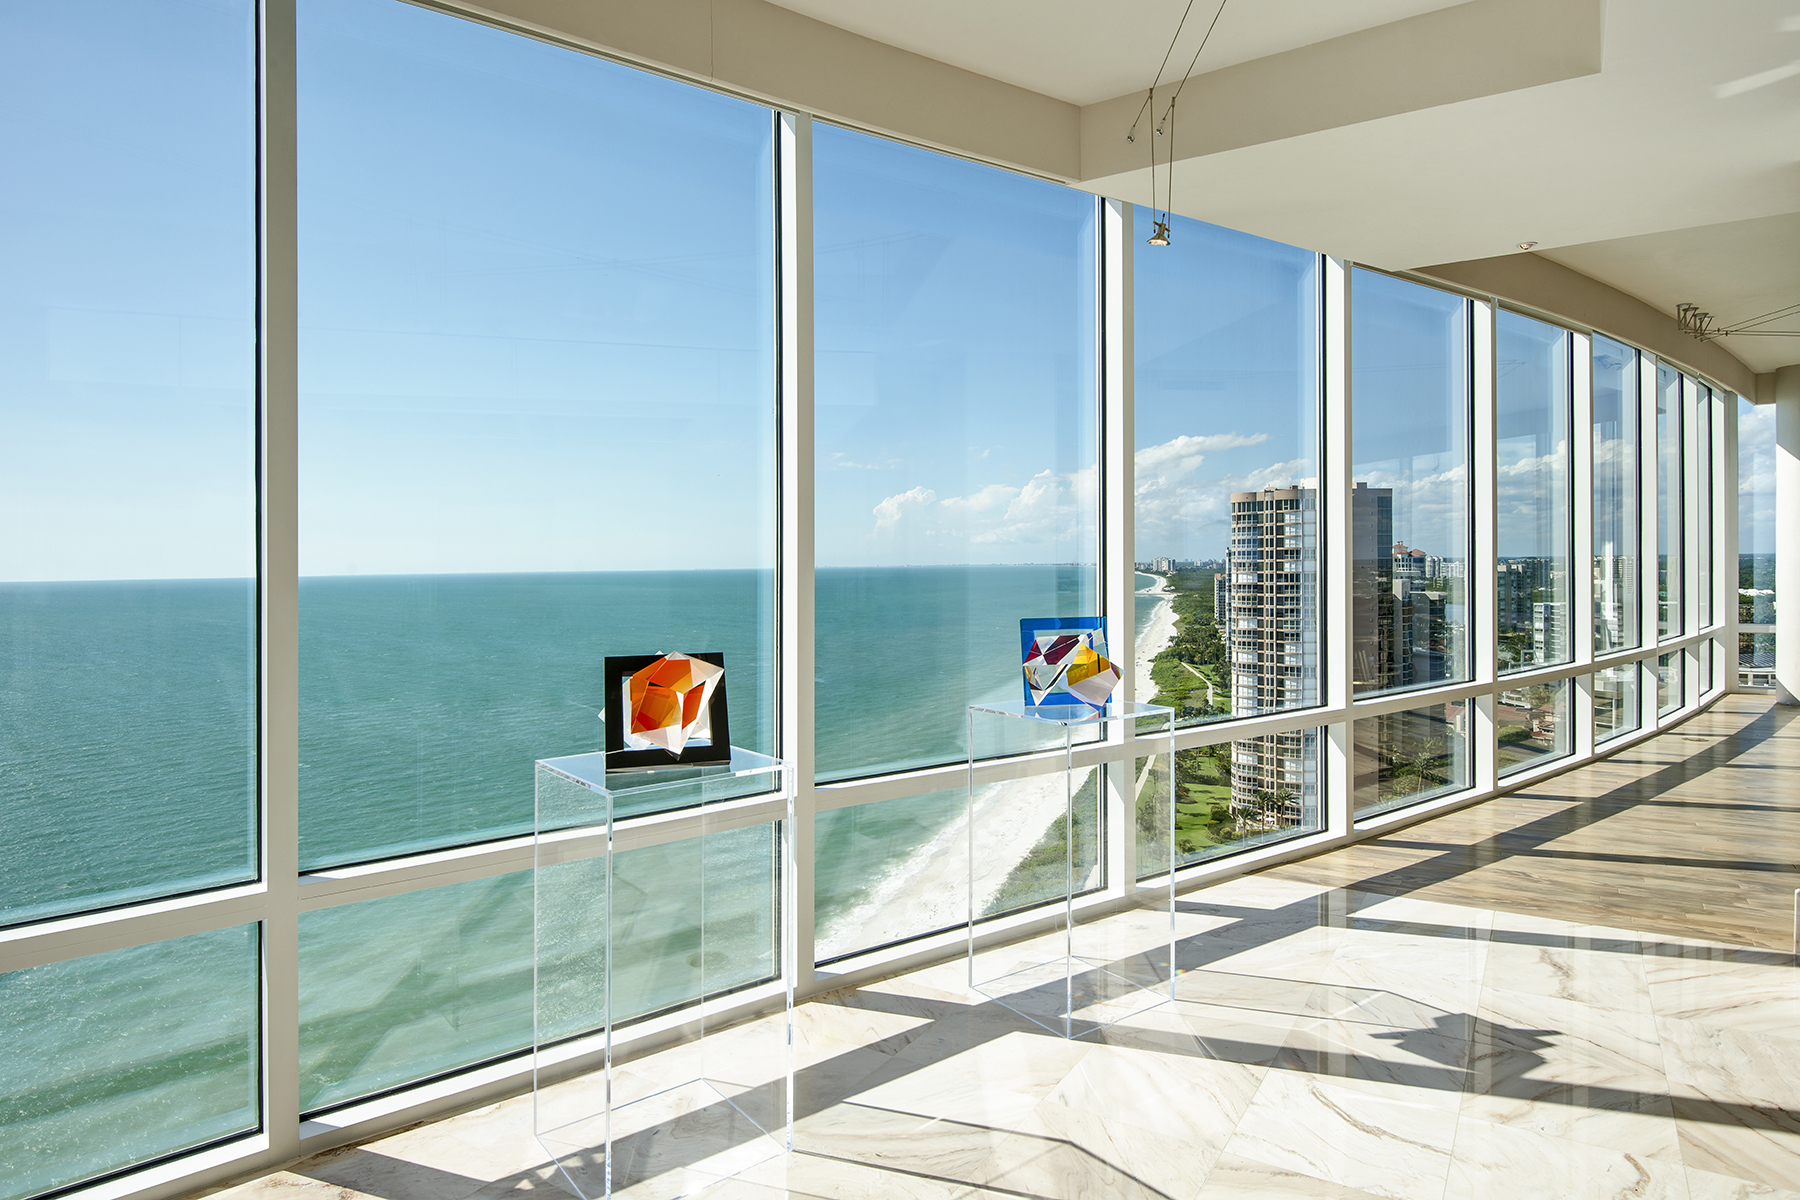 Condominium for Sale at PARK SHORE - LE RIVAGE 4351 Gulf Shore Blvd N PH 5 Naples, Florida 34103 United States